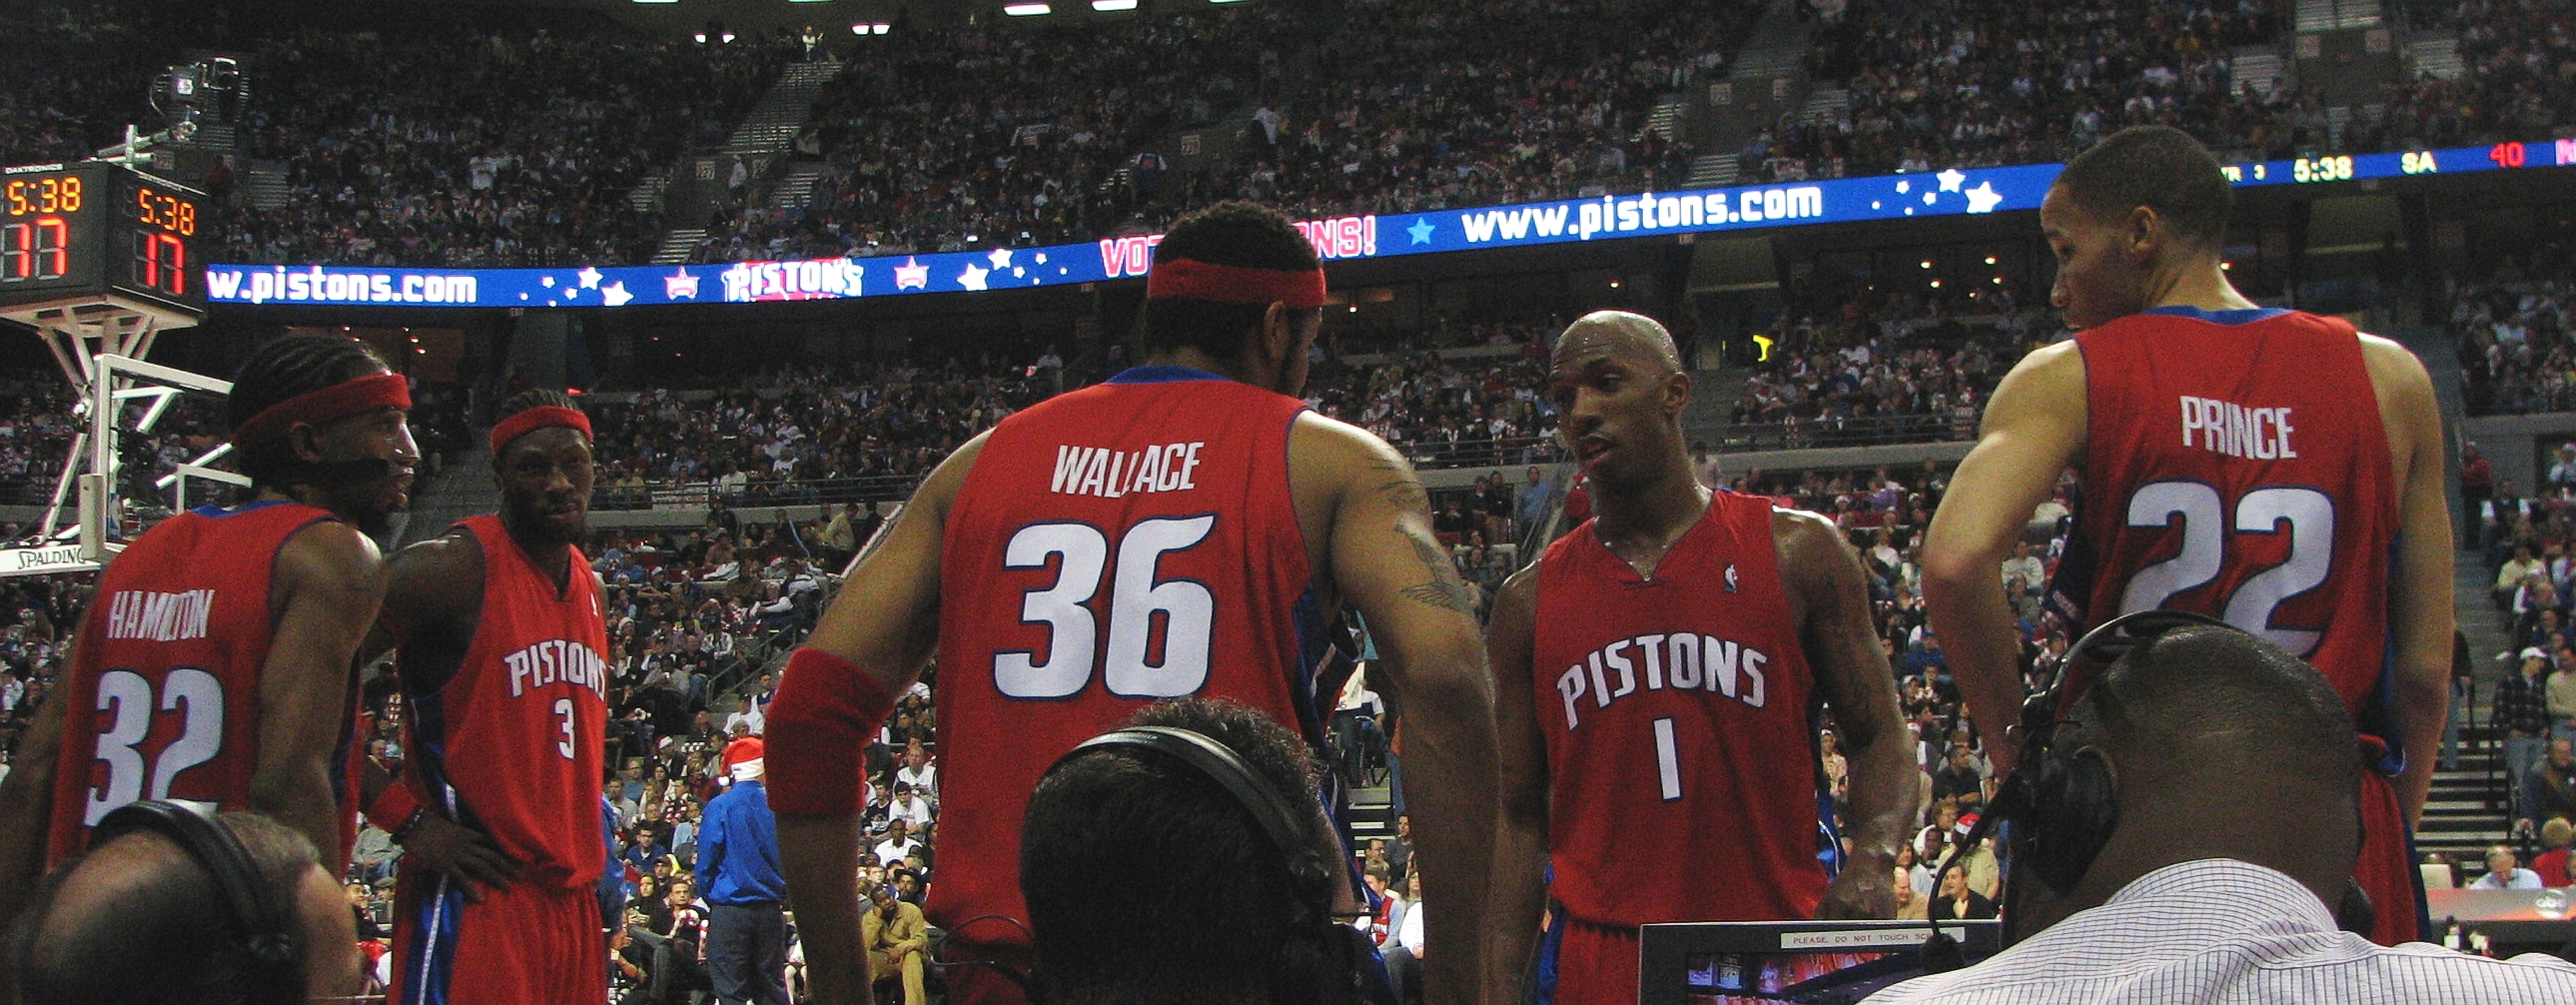 File:Pistons starting 5.jpg - Wikimedia Commons